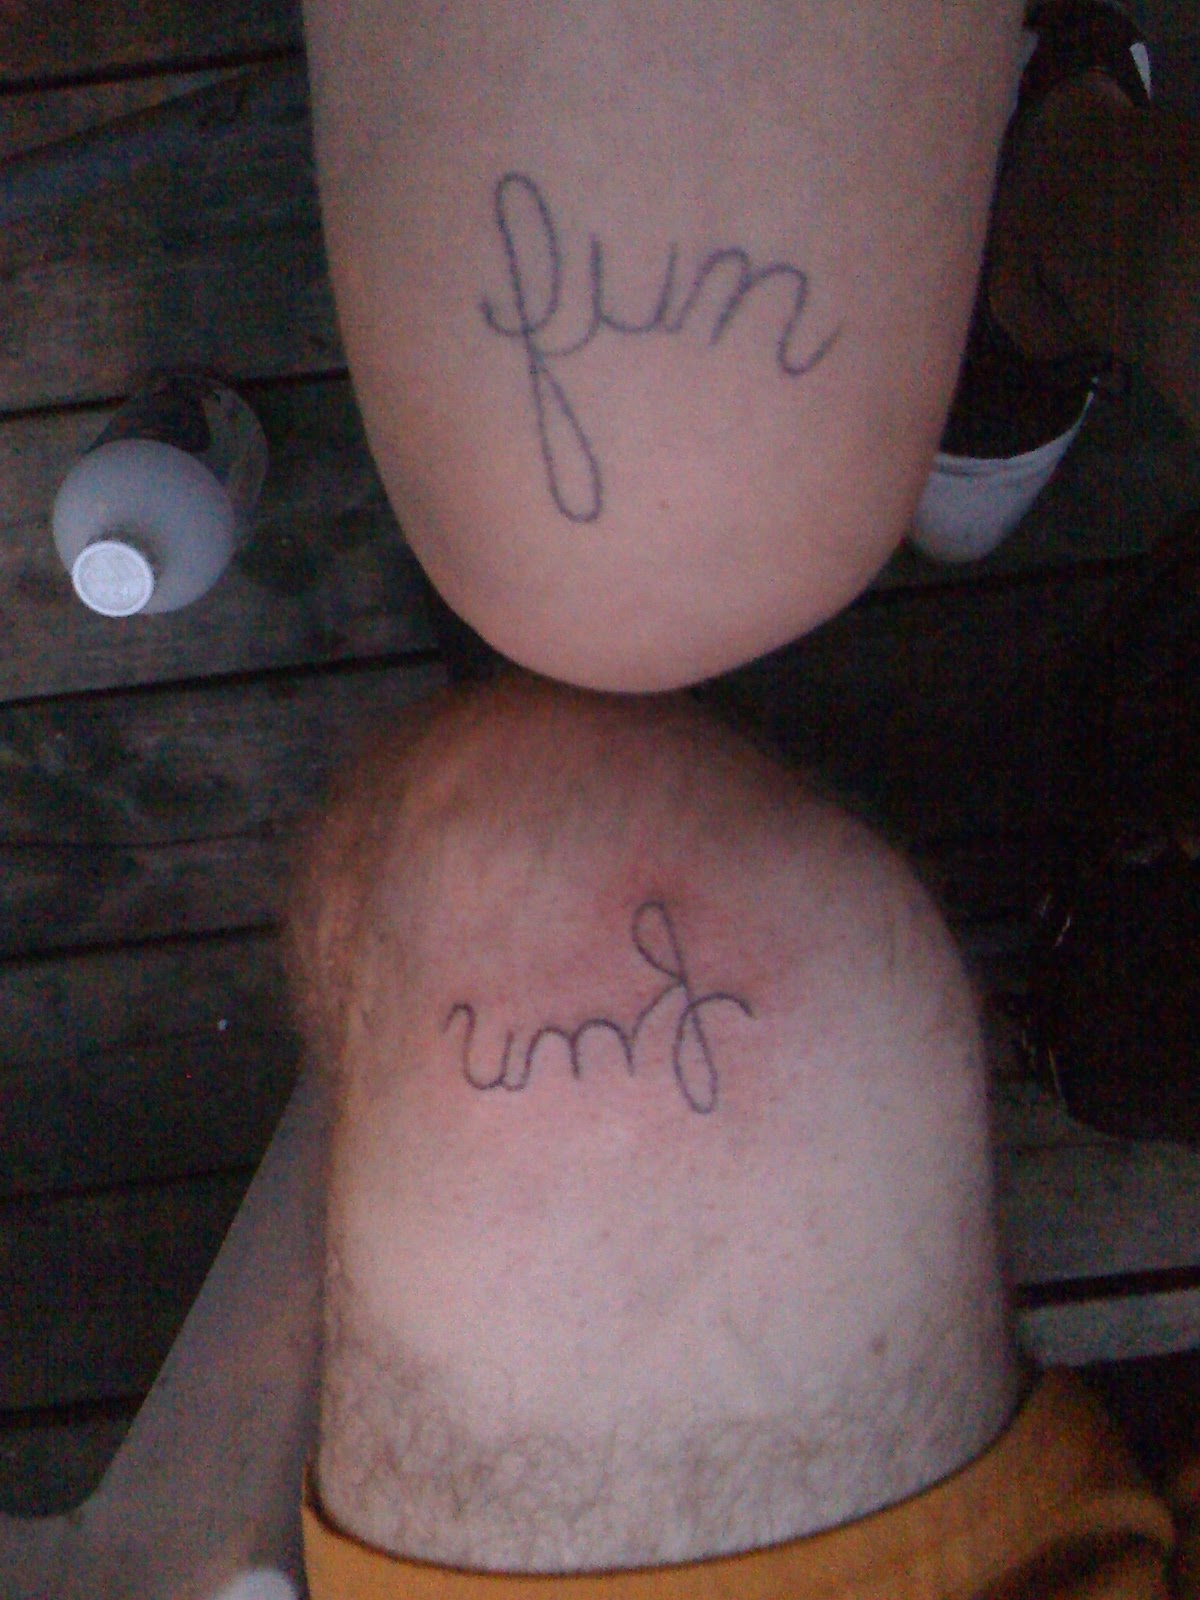 Not Pictured Is Margus' Brother Velo's Fun Knee Tattoo Done By Margus